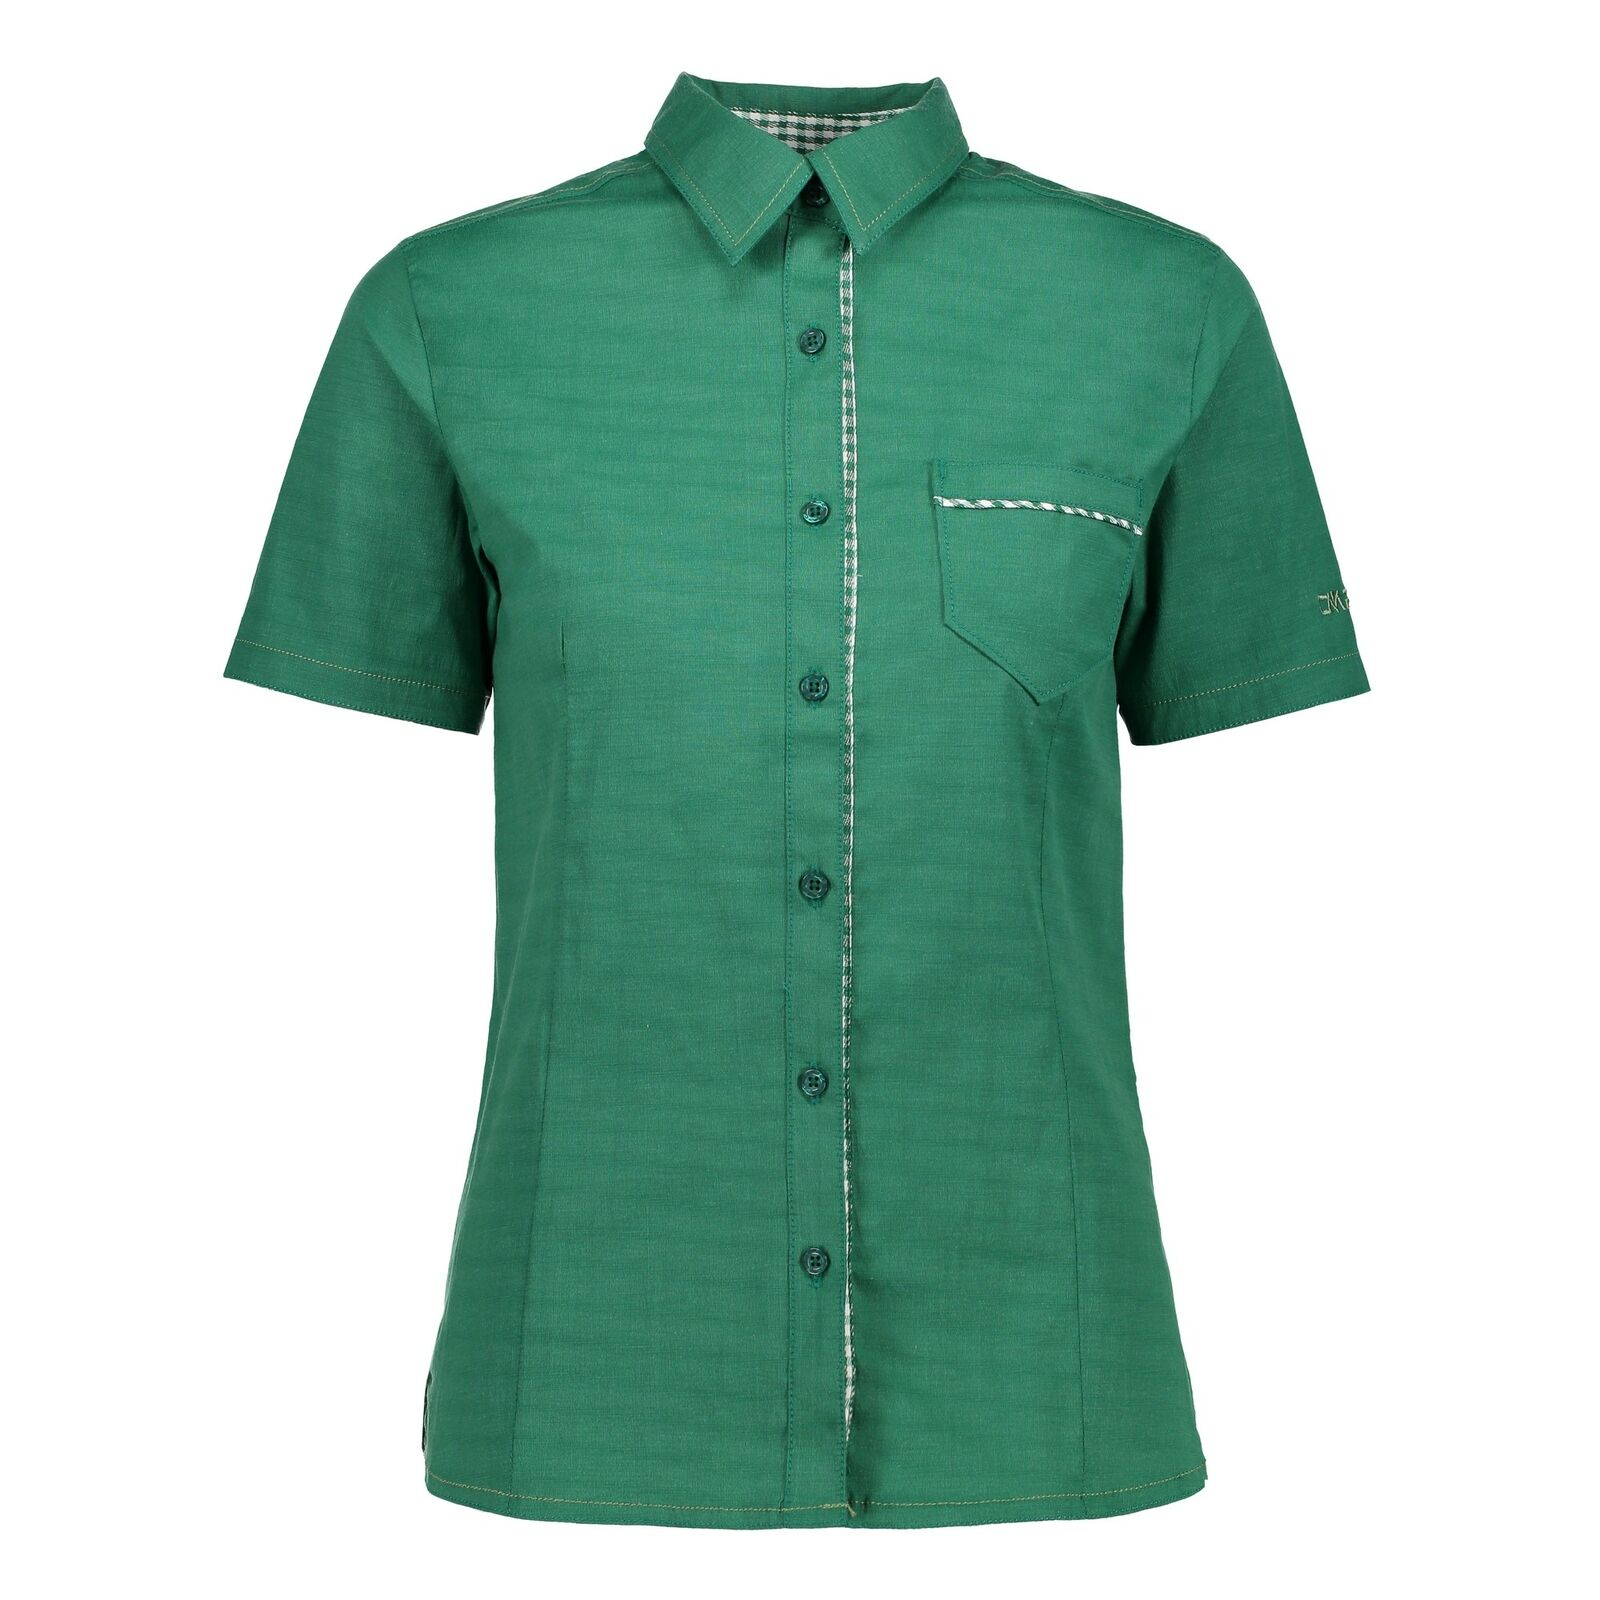 CMP woman blouse shirt green breathable fast drying elastic plain   all products get up to 34% off